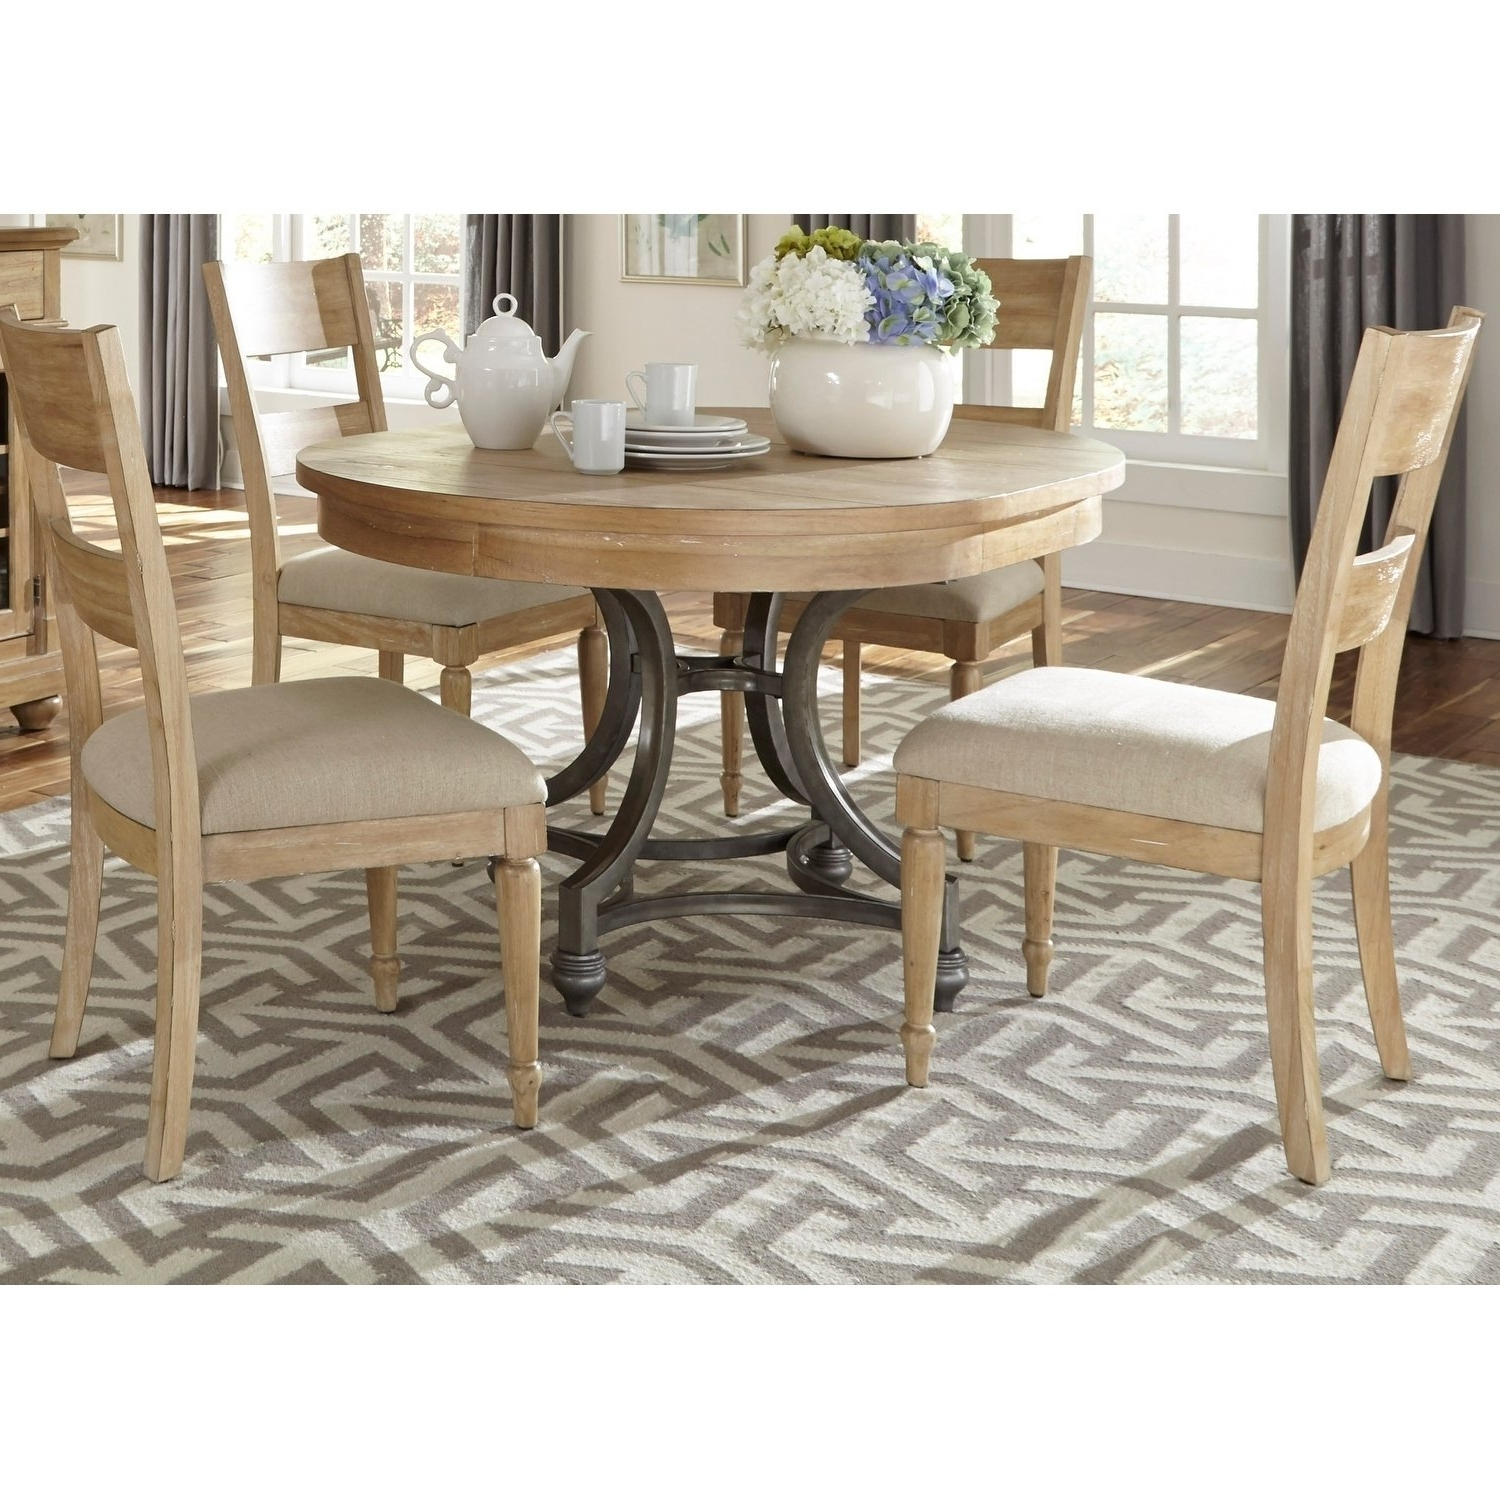 Jaxon 5 Piece Round Dining Sets With Upholstered Chairs Within Most Up To Date Shop Harbor View Sand 5 Piece Round Table Set – On Sale – Free (Gallery 22 of 25)